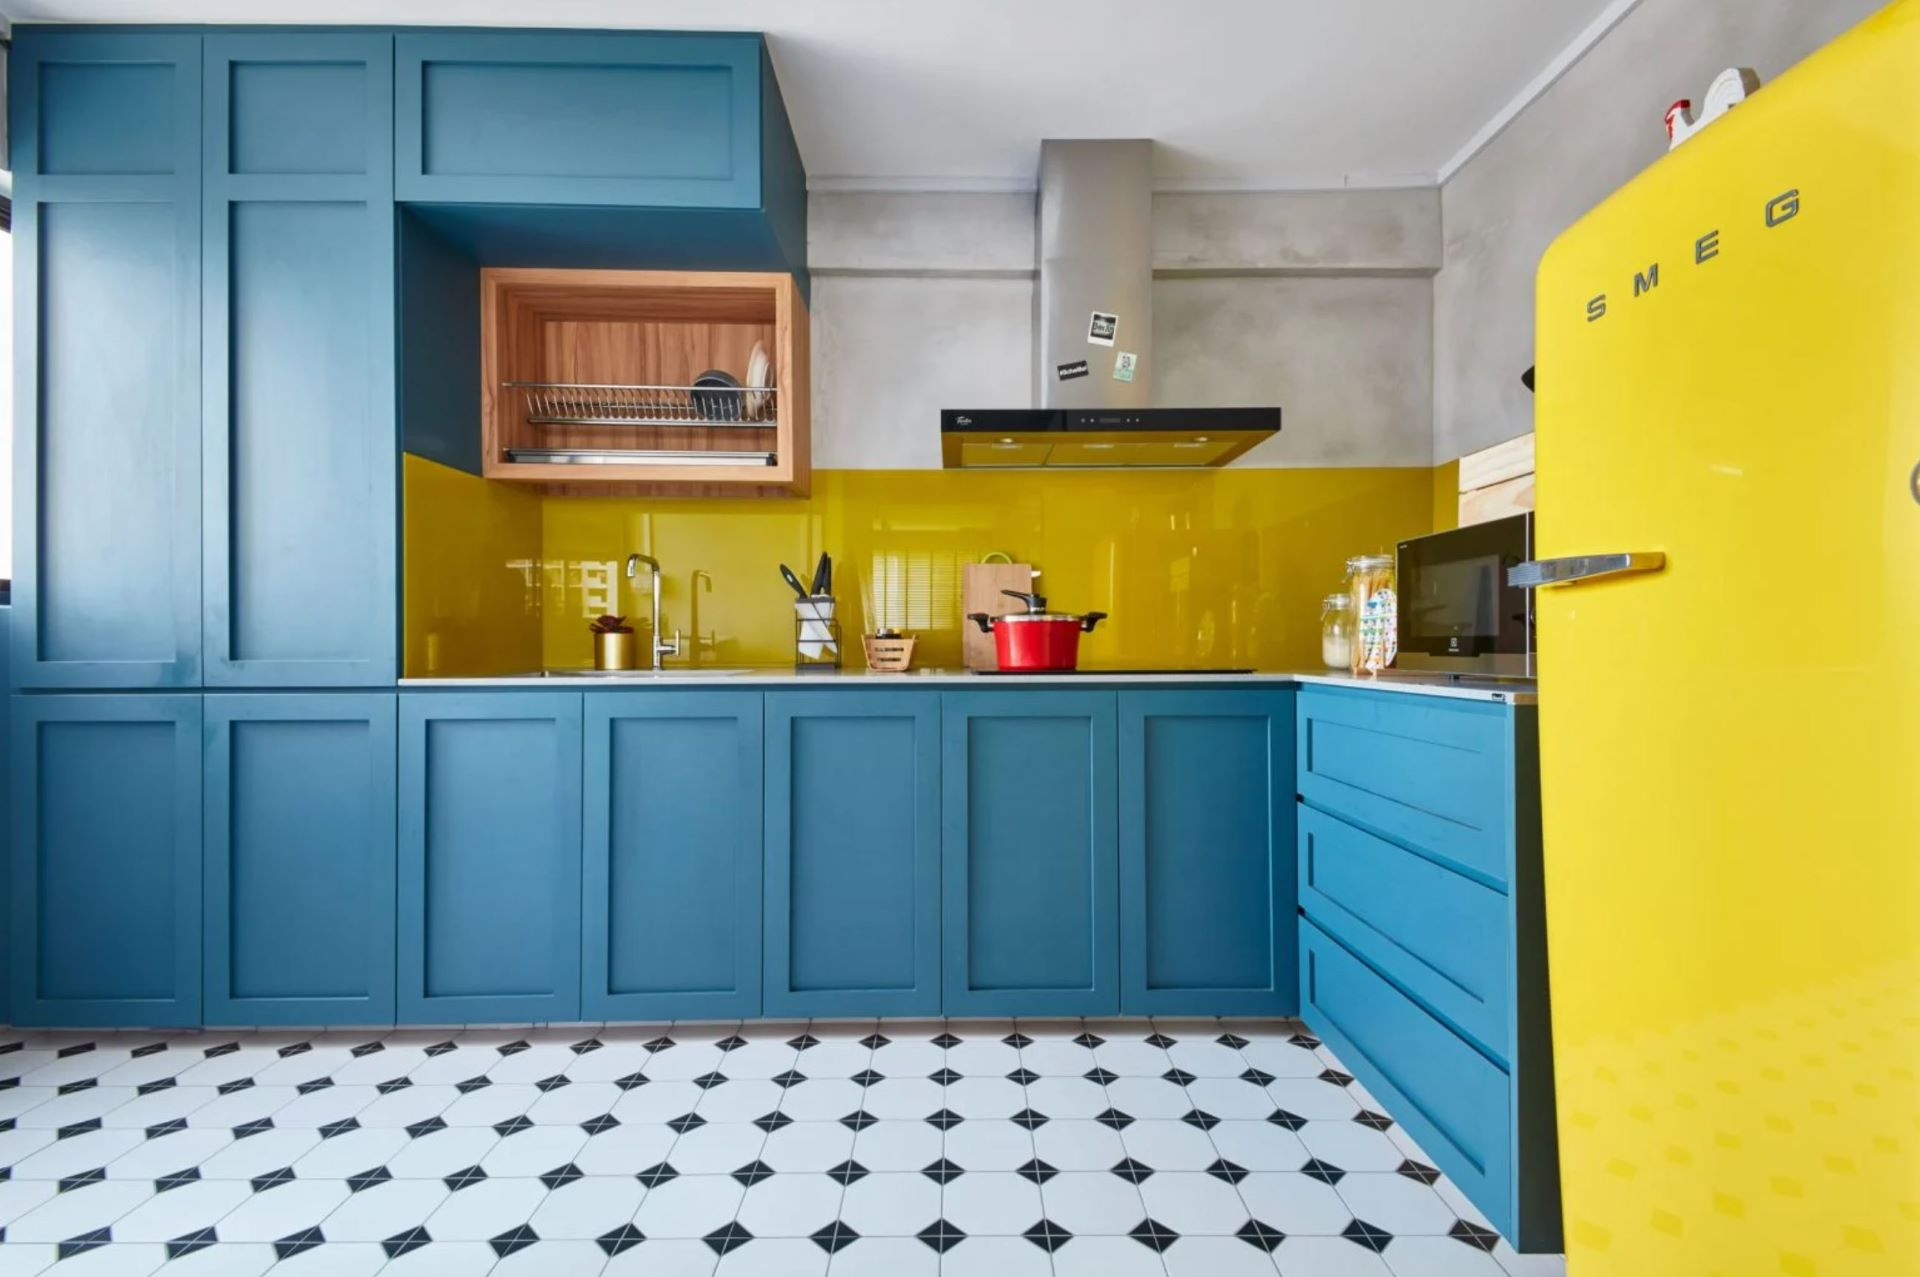 Bright vivid colors inject Retro vibe in the kitchen space